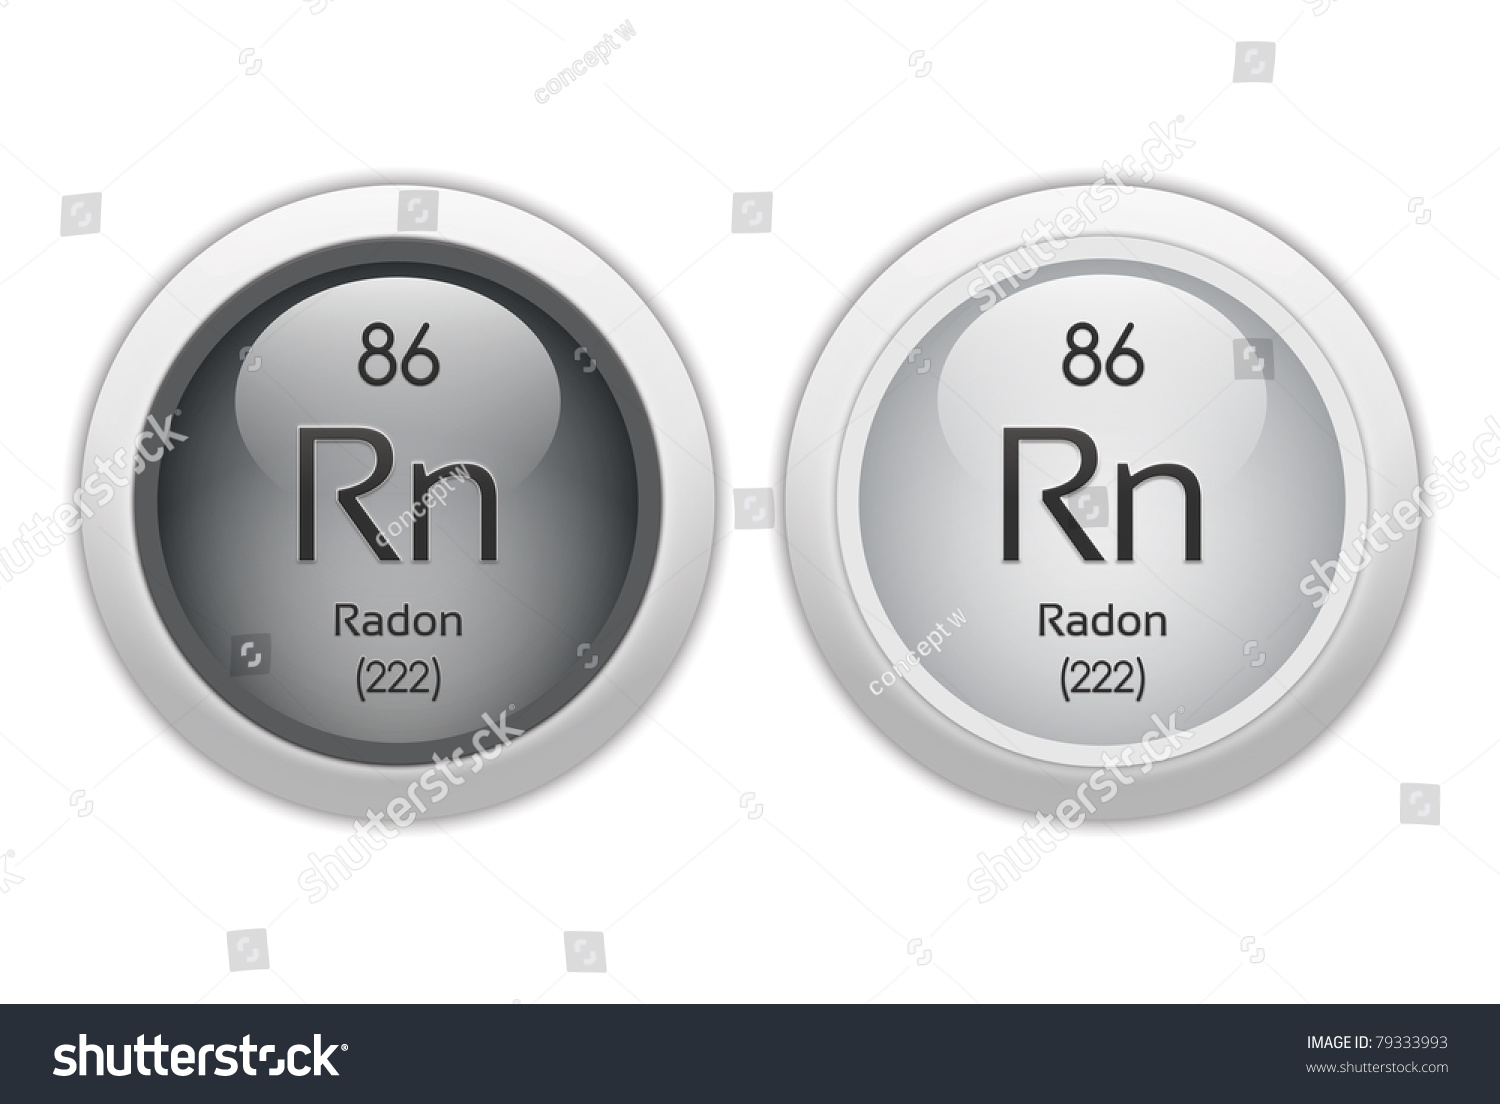 Radon web buttons chemical element atomic stock illustration radon web buttons chemical element with atomic number 86 it is represented by buycottarizona